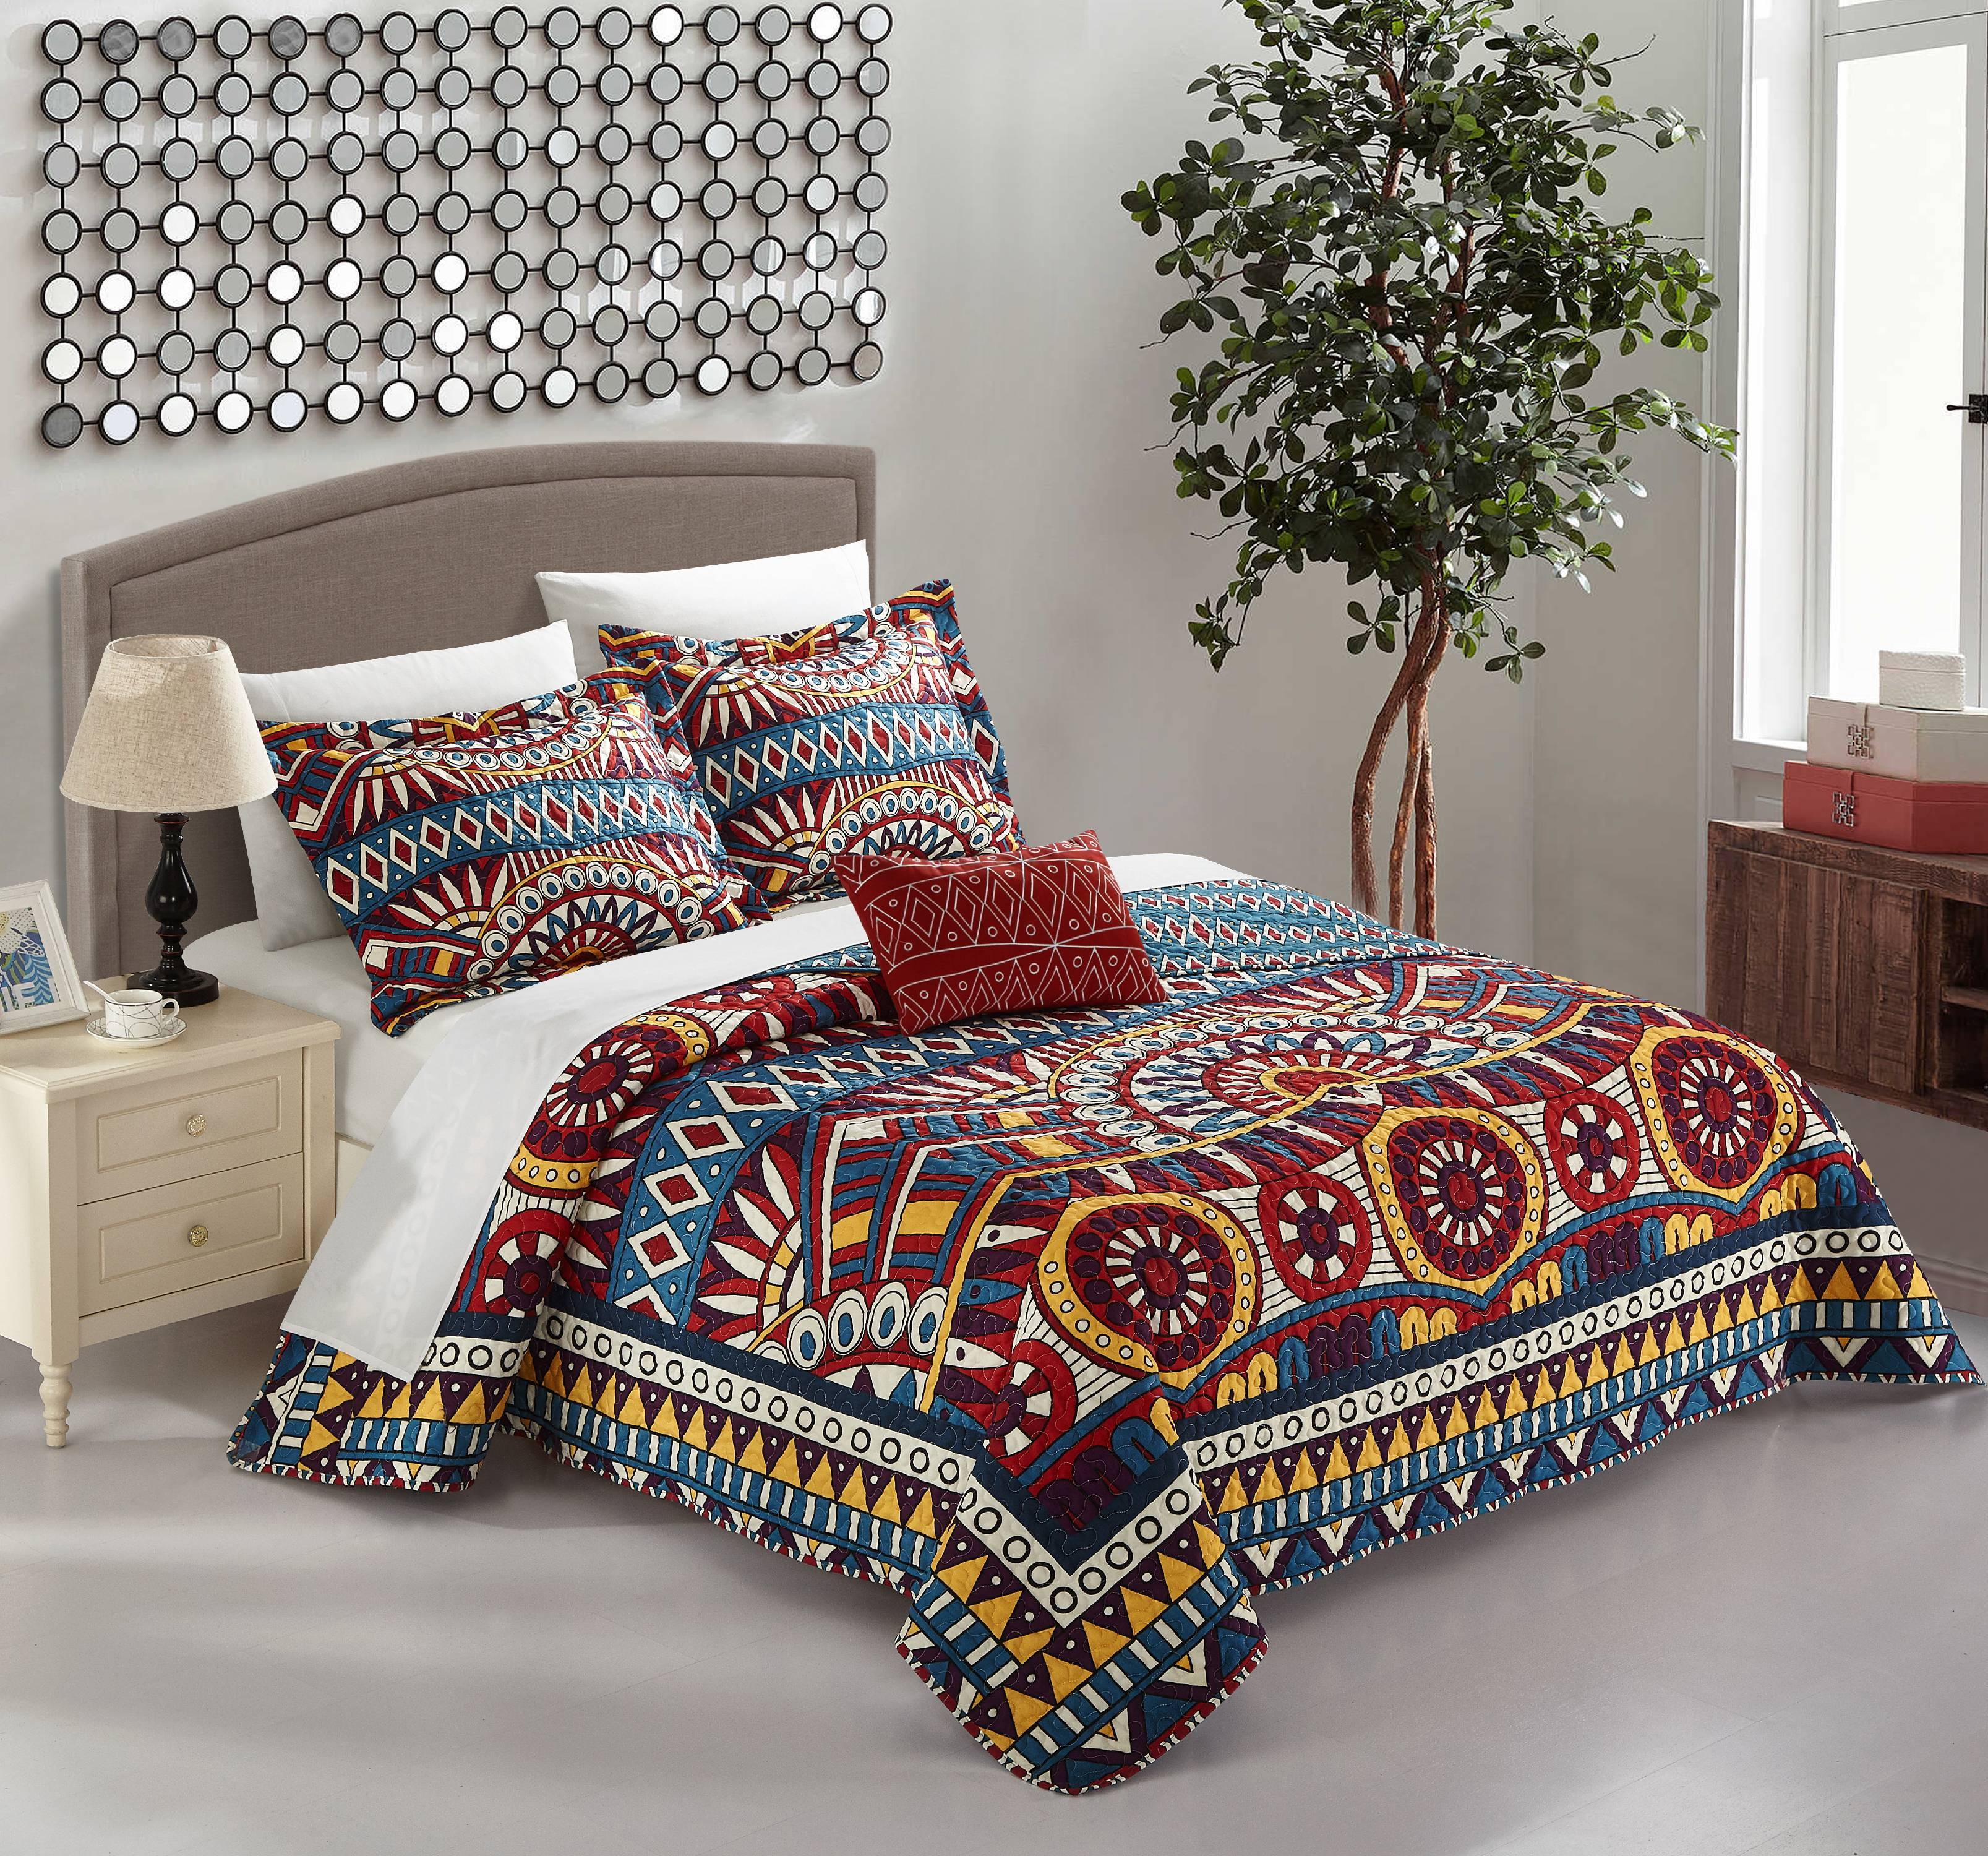 Chic Home Kaemon 4 Piece Reversible Quilt Cover Set Globally Inspired Boho Print with... by Chic Home